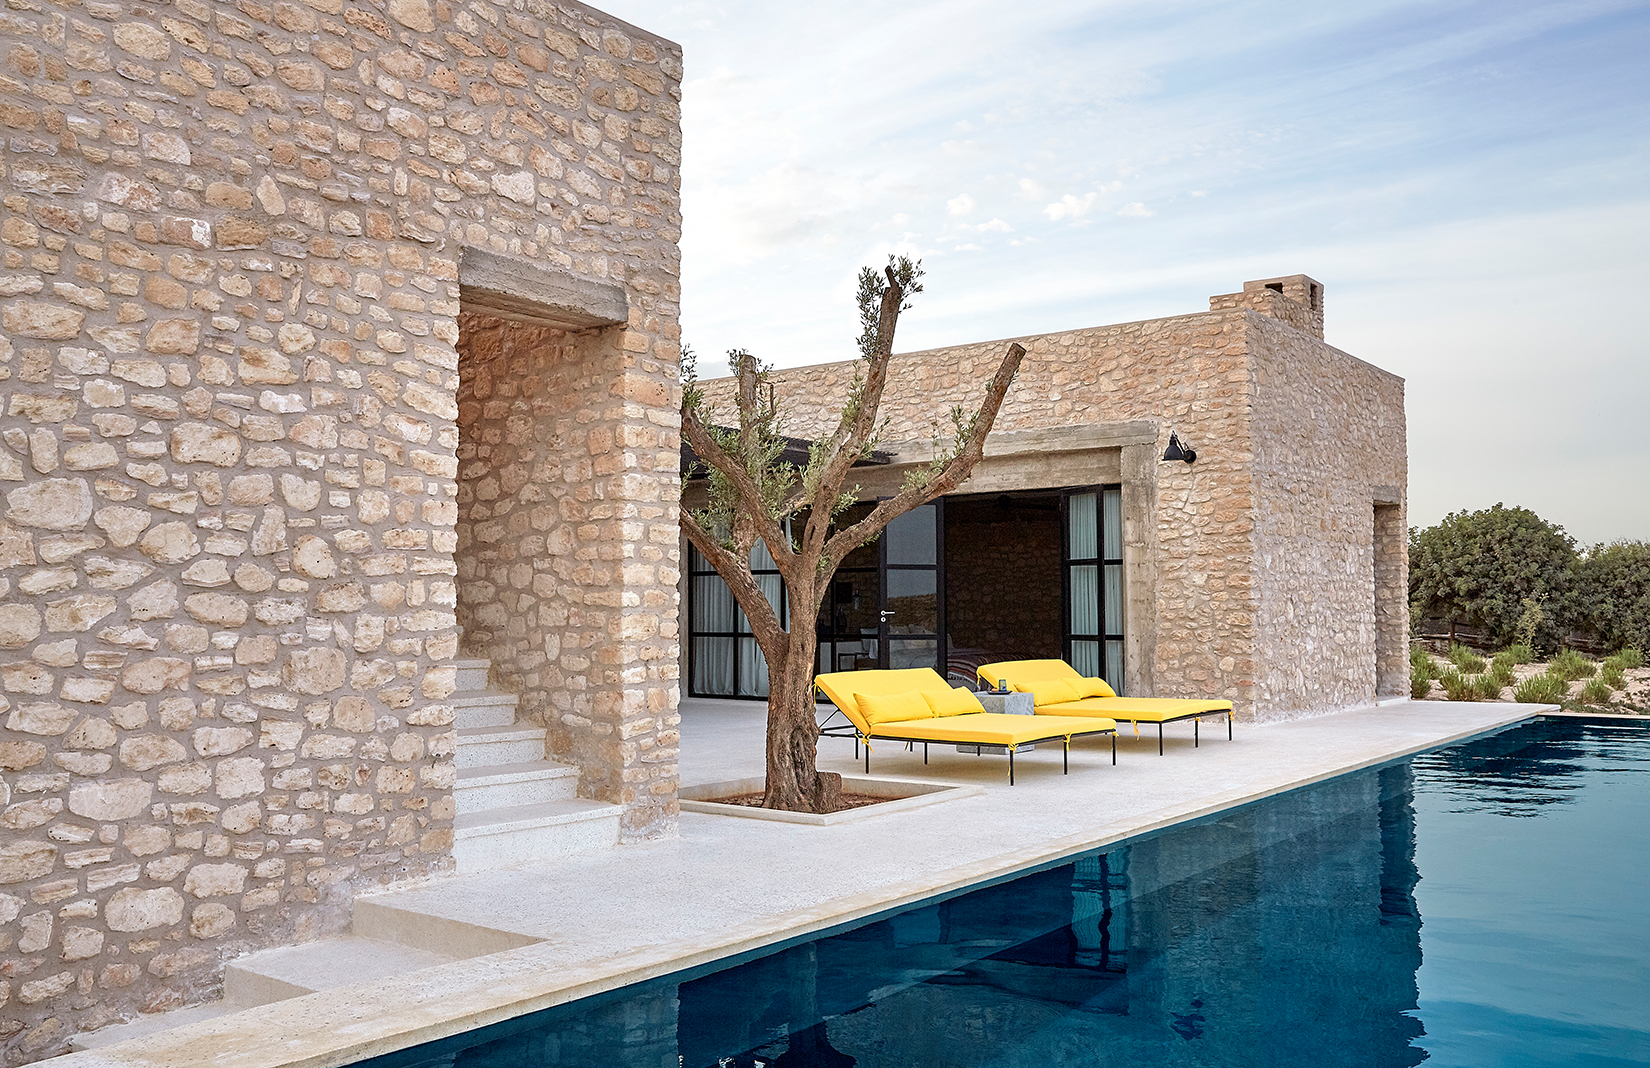 Holiday home for rent in Essaouira, Morocco